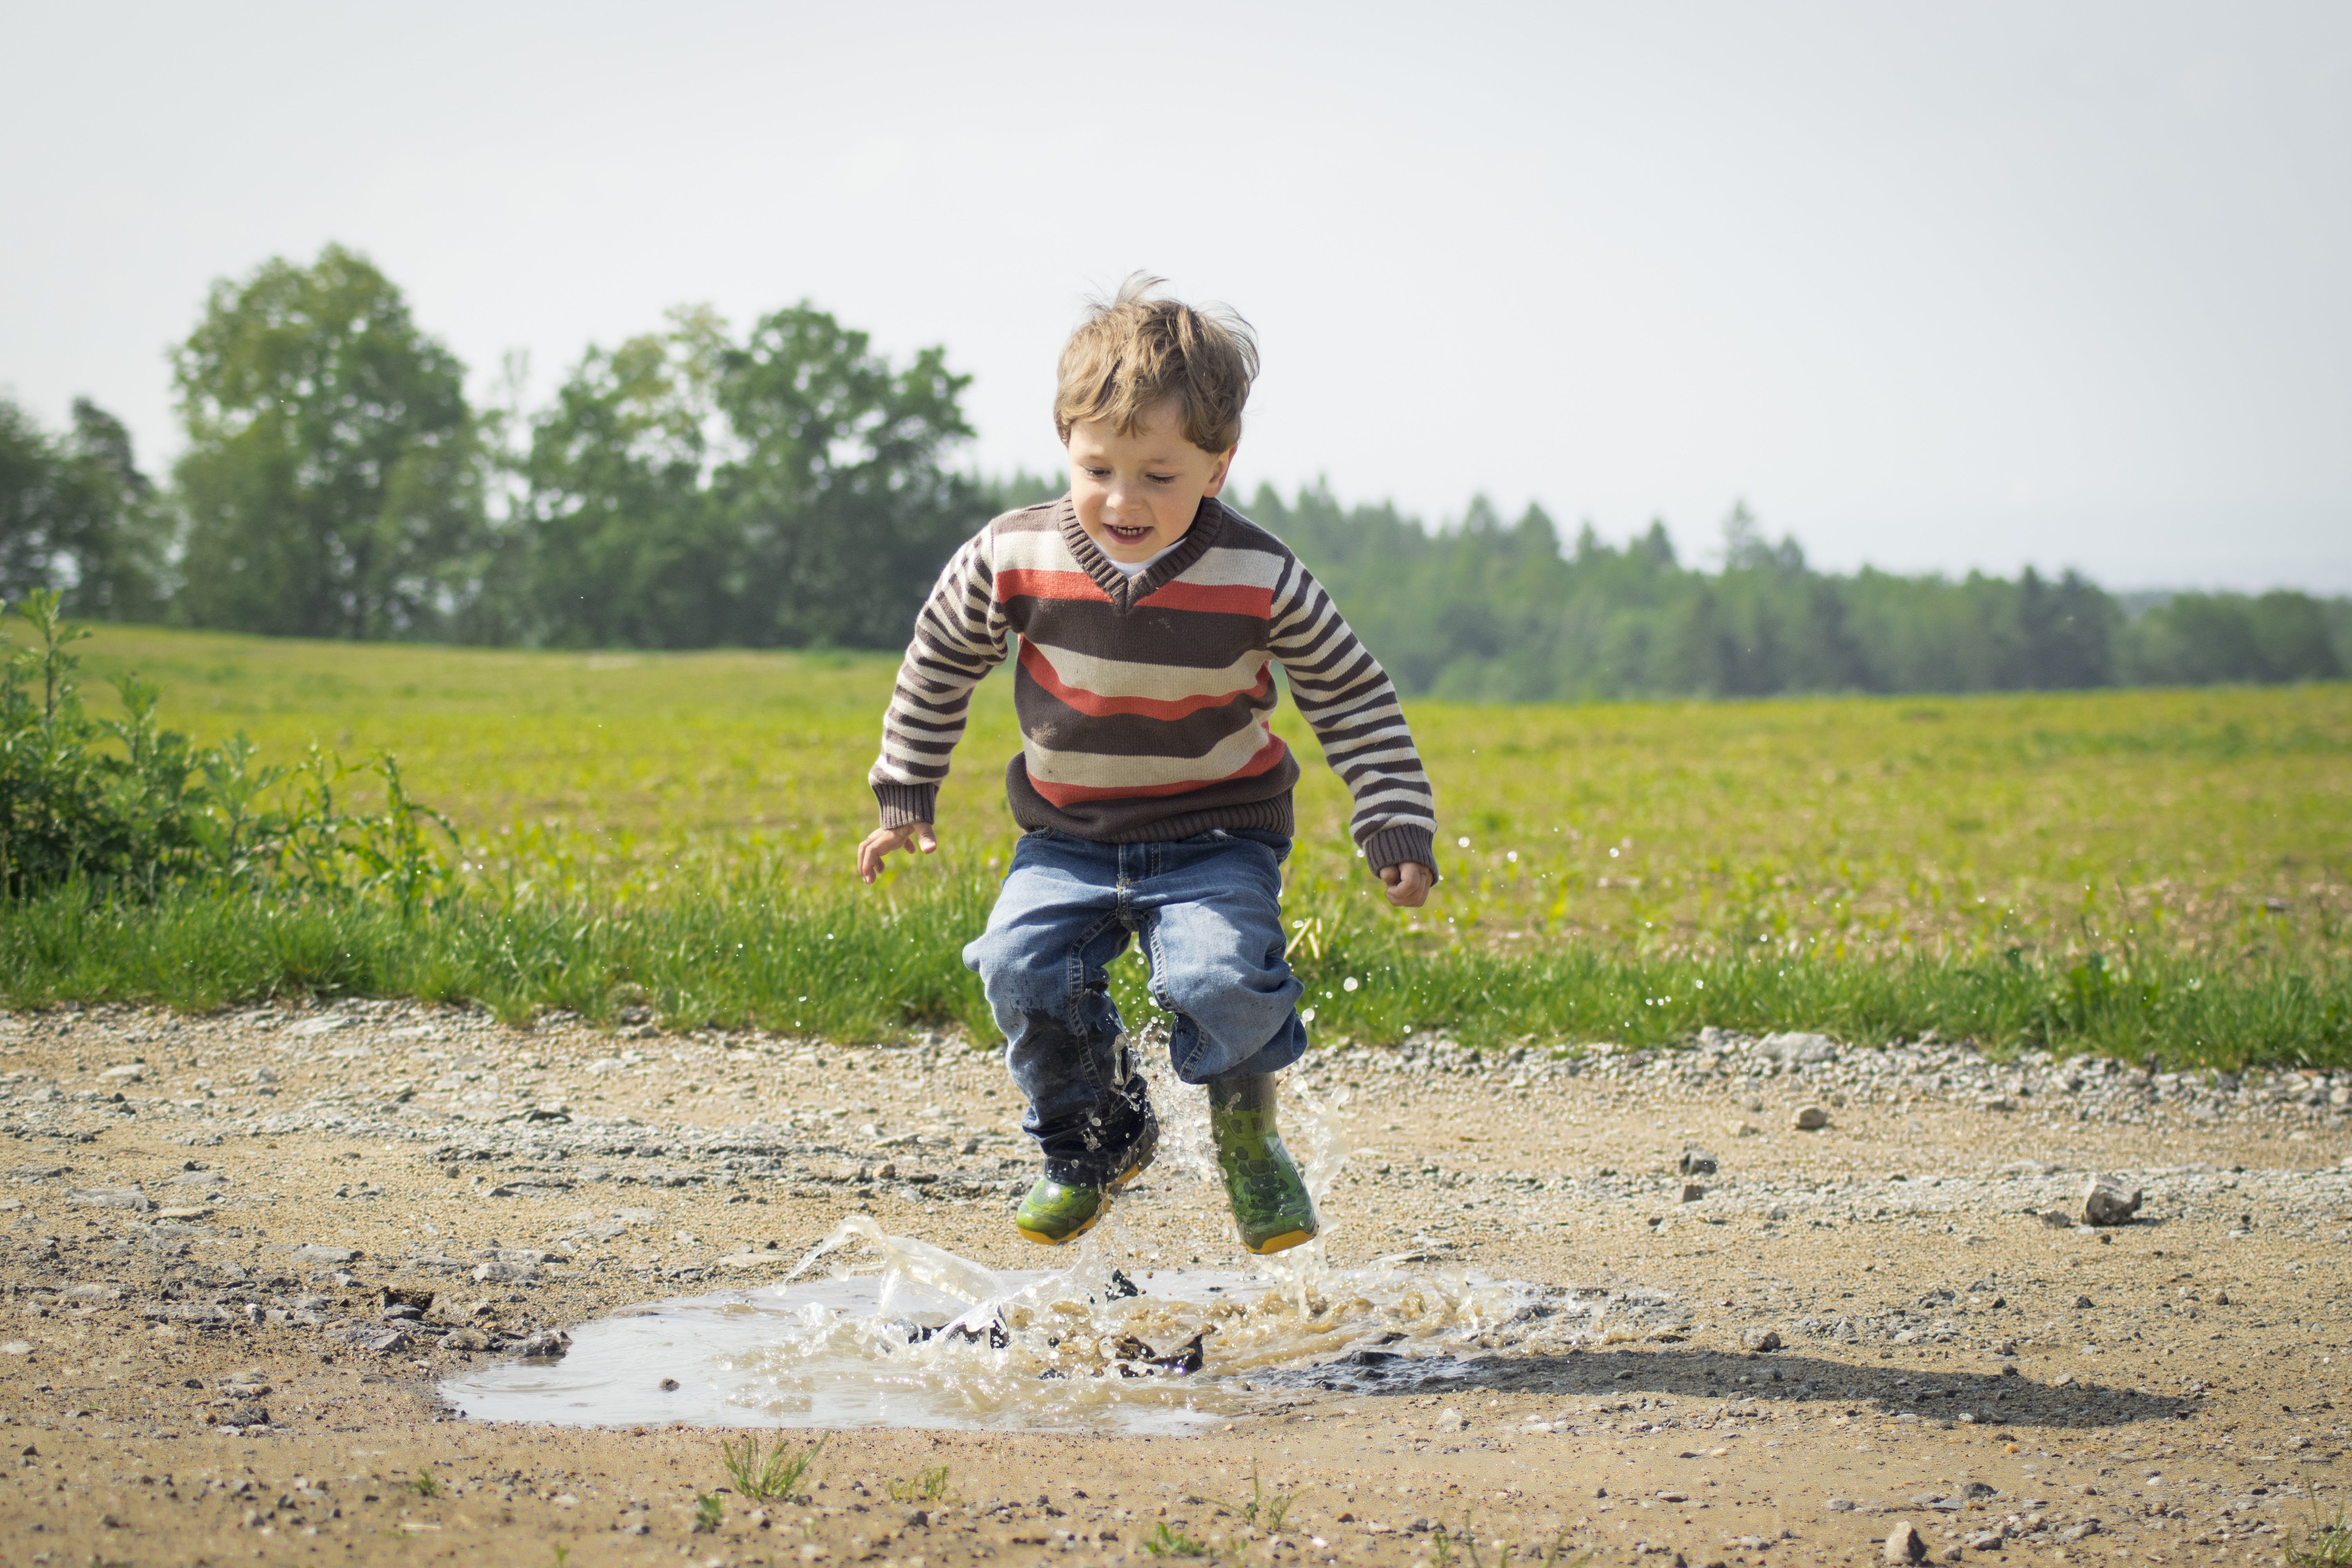 Boy Jumping Near Grass at Daytime